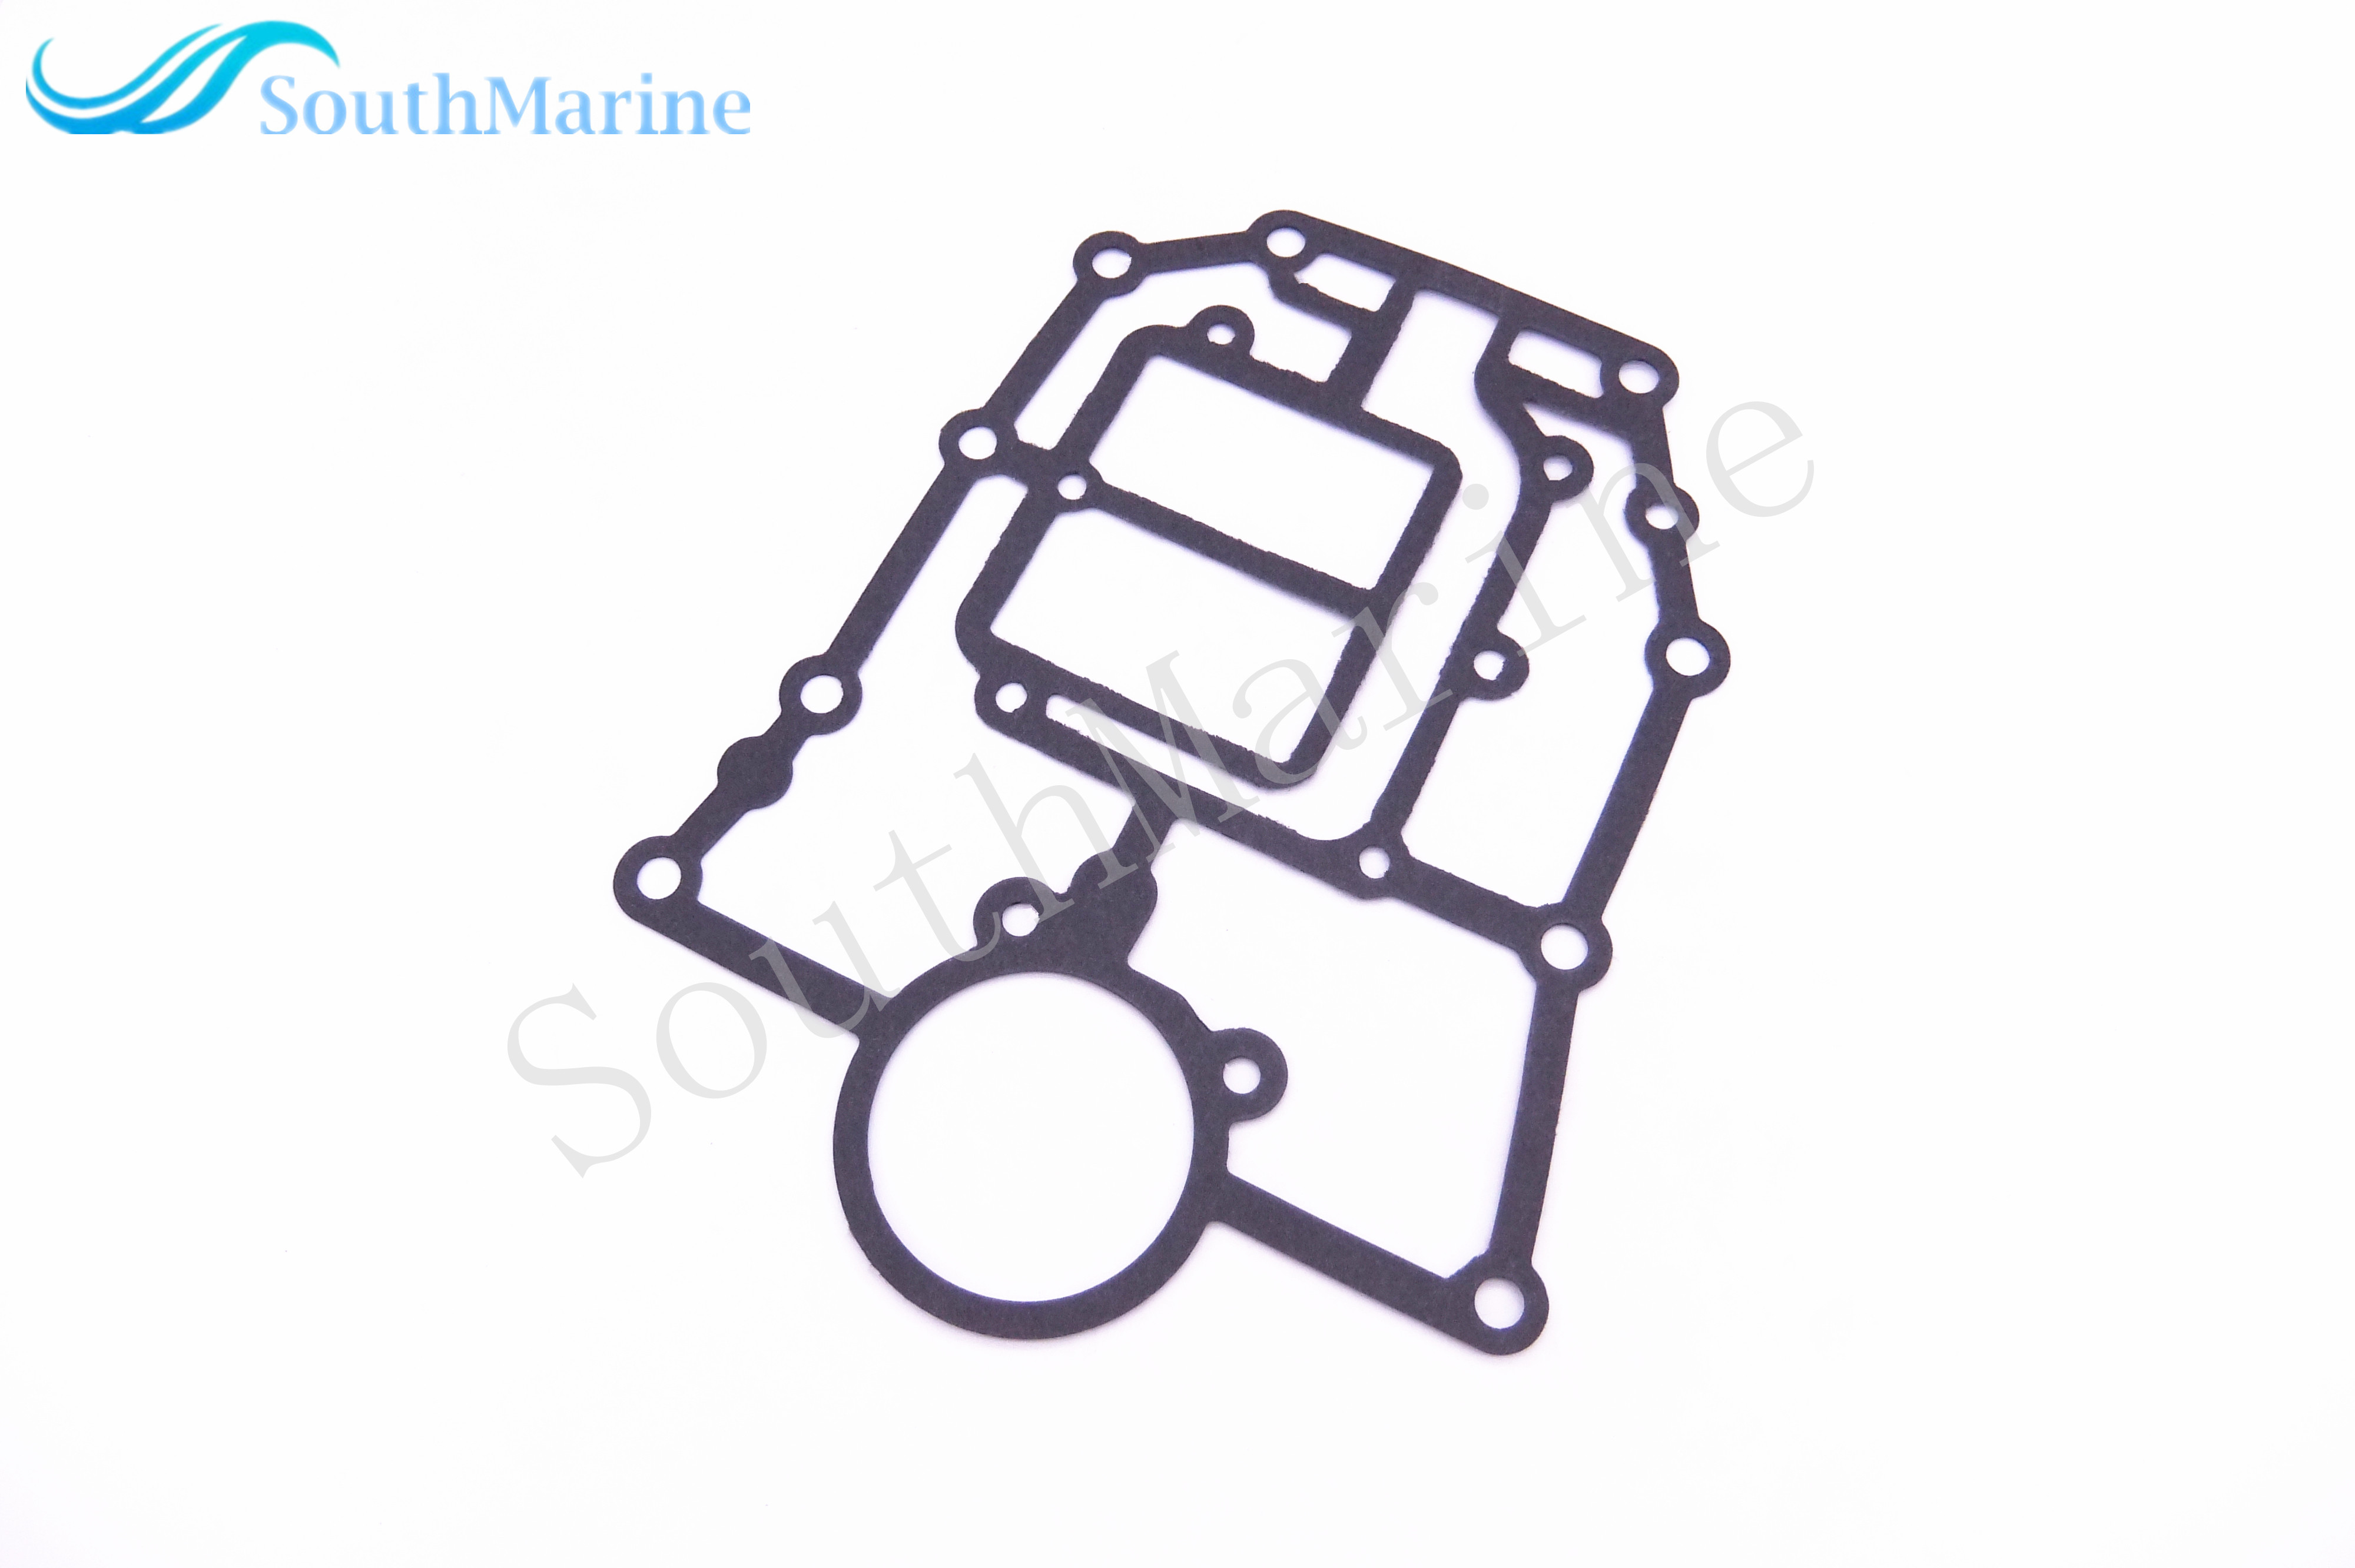 small resolution of 11433 94412 boat motor gasket under oil seal for suzuki 40hp dt40 outboard engine 11433 94411